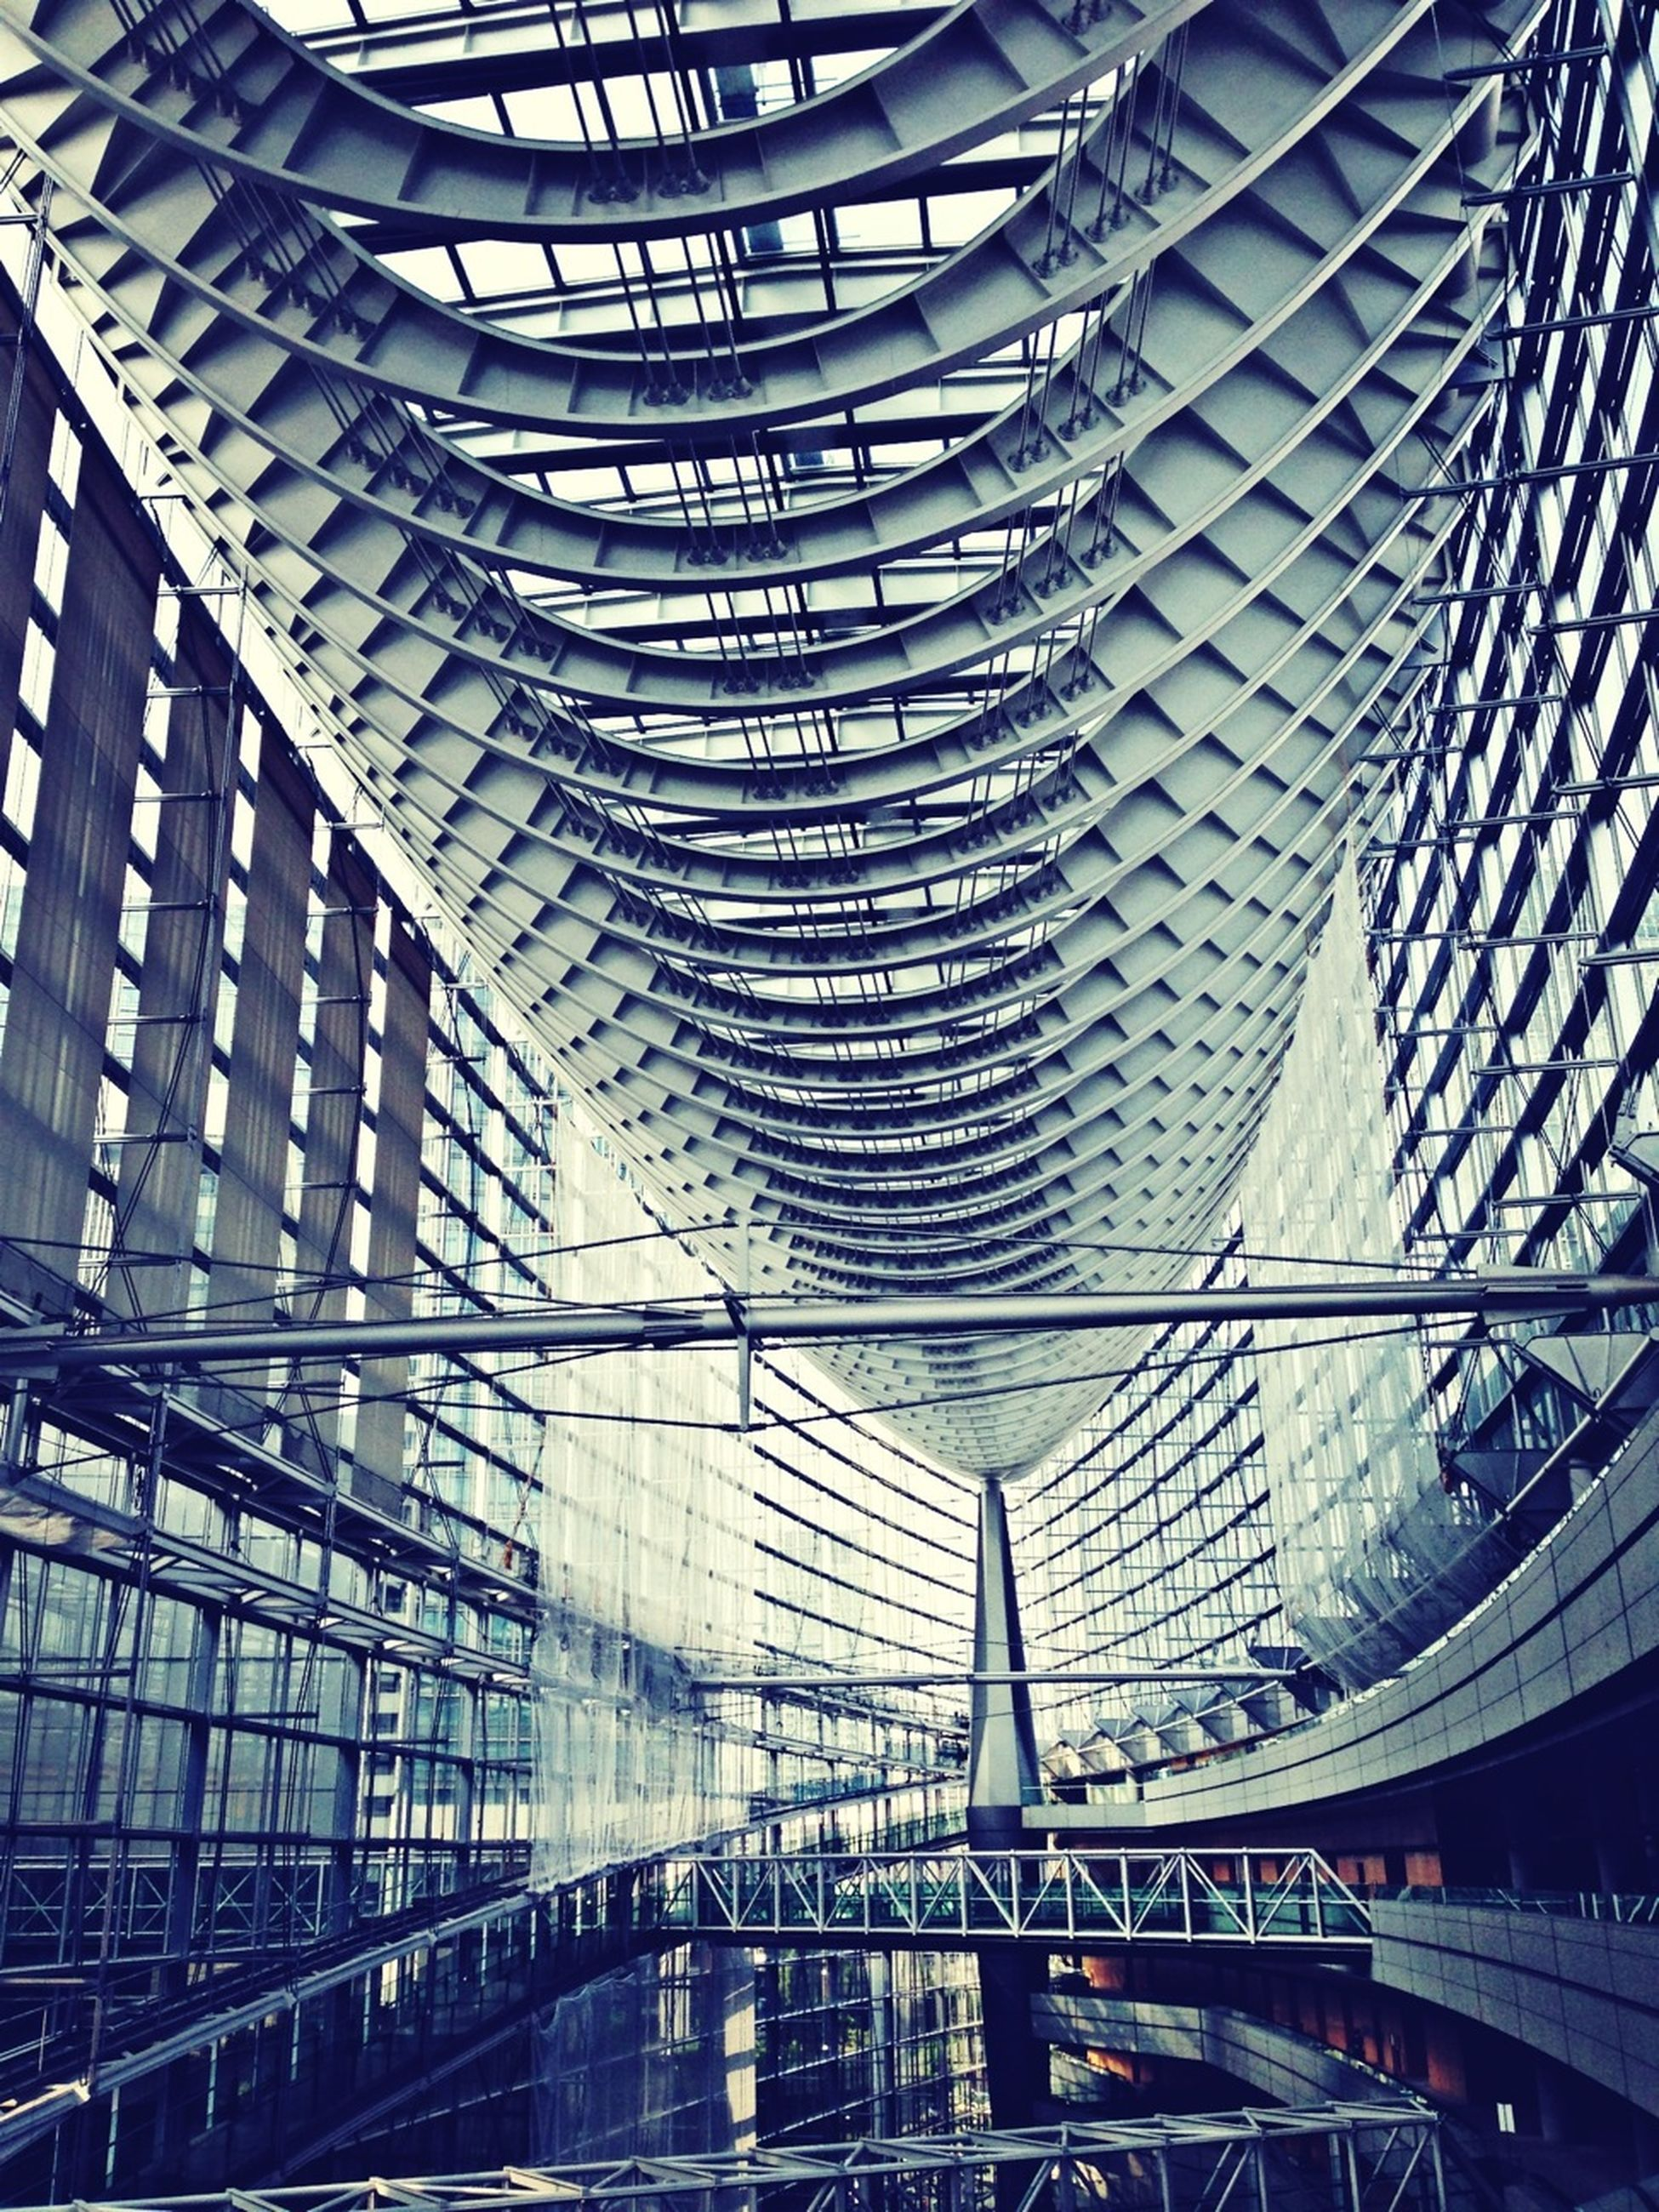 built structure, architecture, modern, indoors, building exterior, city, low angle view, ceiling, pattern, glass - material, metal, building, incidental people, transportation, architectural feature, high angle view, full frame, day, office building, capital cities